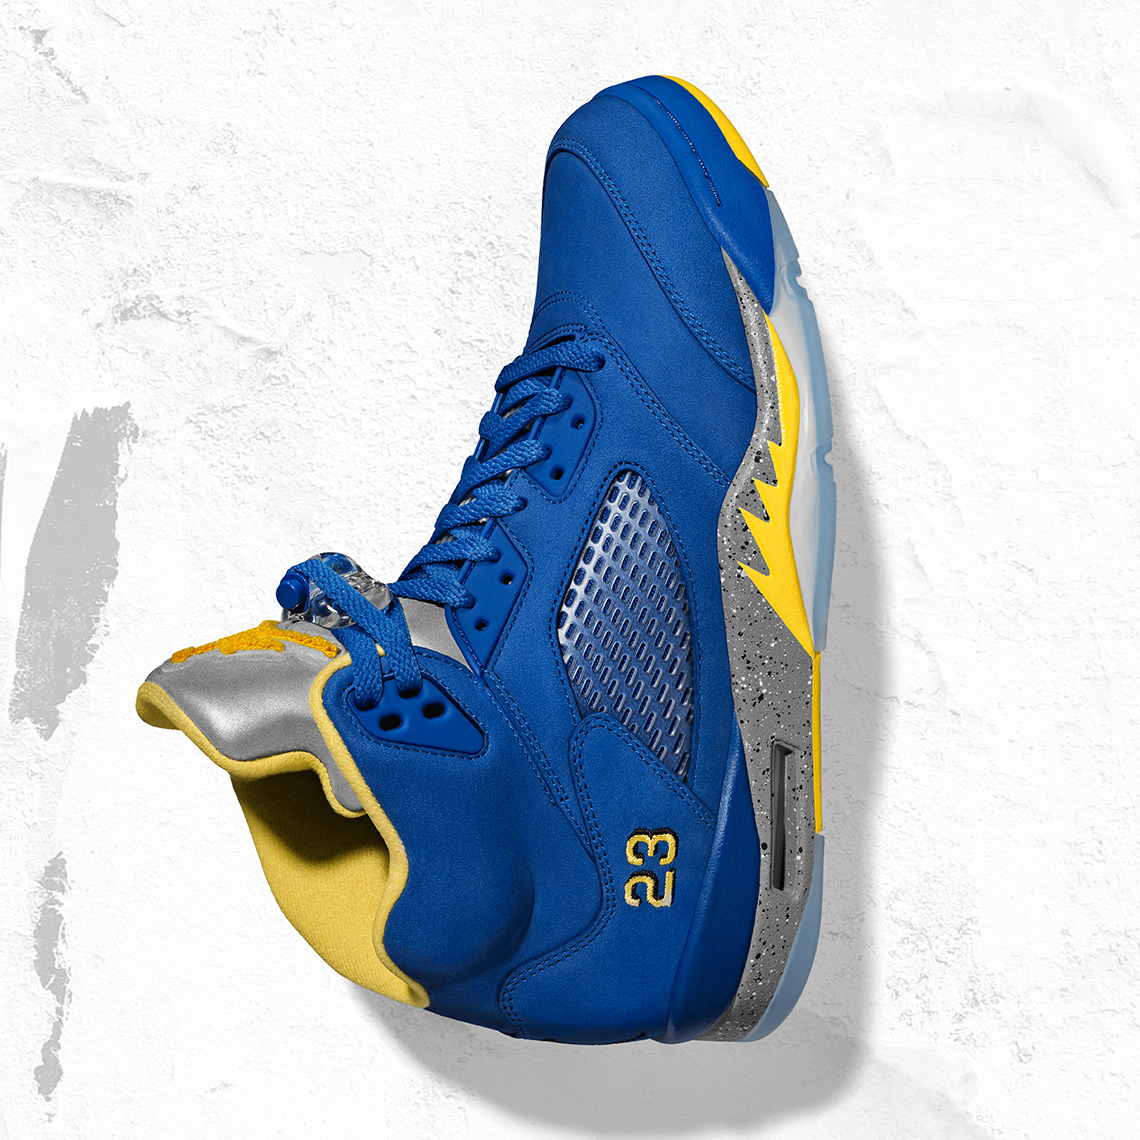 258f2598a40 Get the scoop on all eight kicks below, and look for them to roll out over  February, culminating on gameday: February 17th. Advertisement. Air Jordan  ...